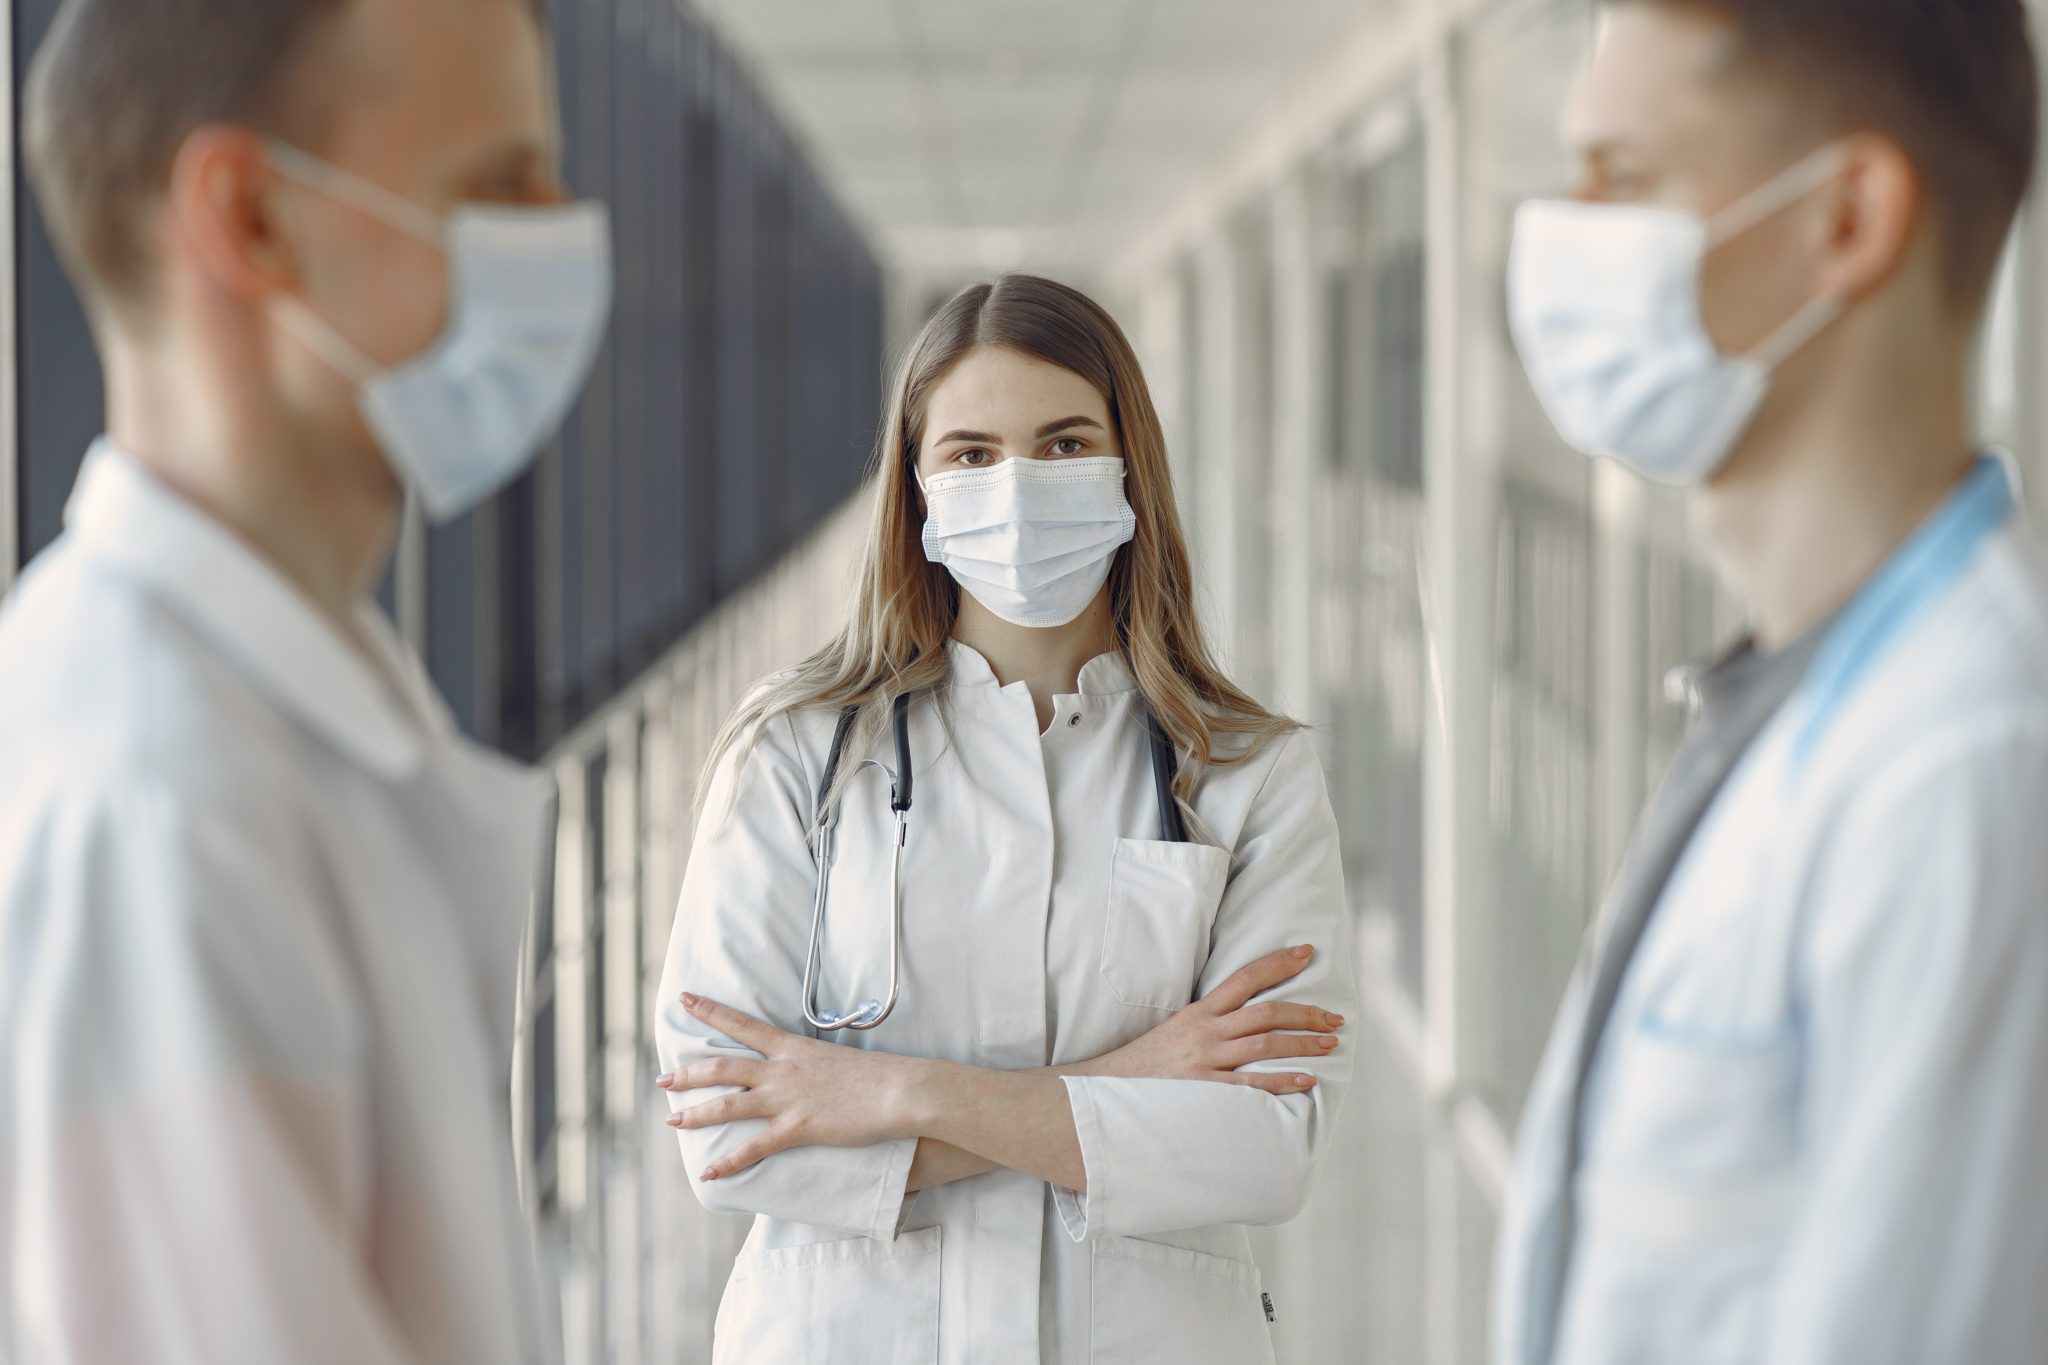 a nurse wearing a facemask and thinking about medical technology